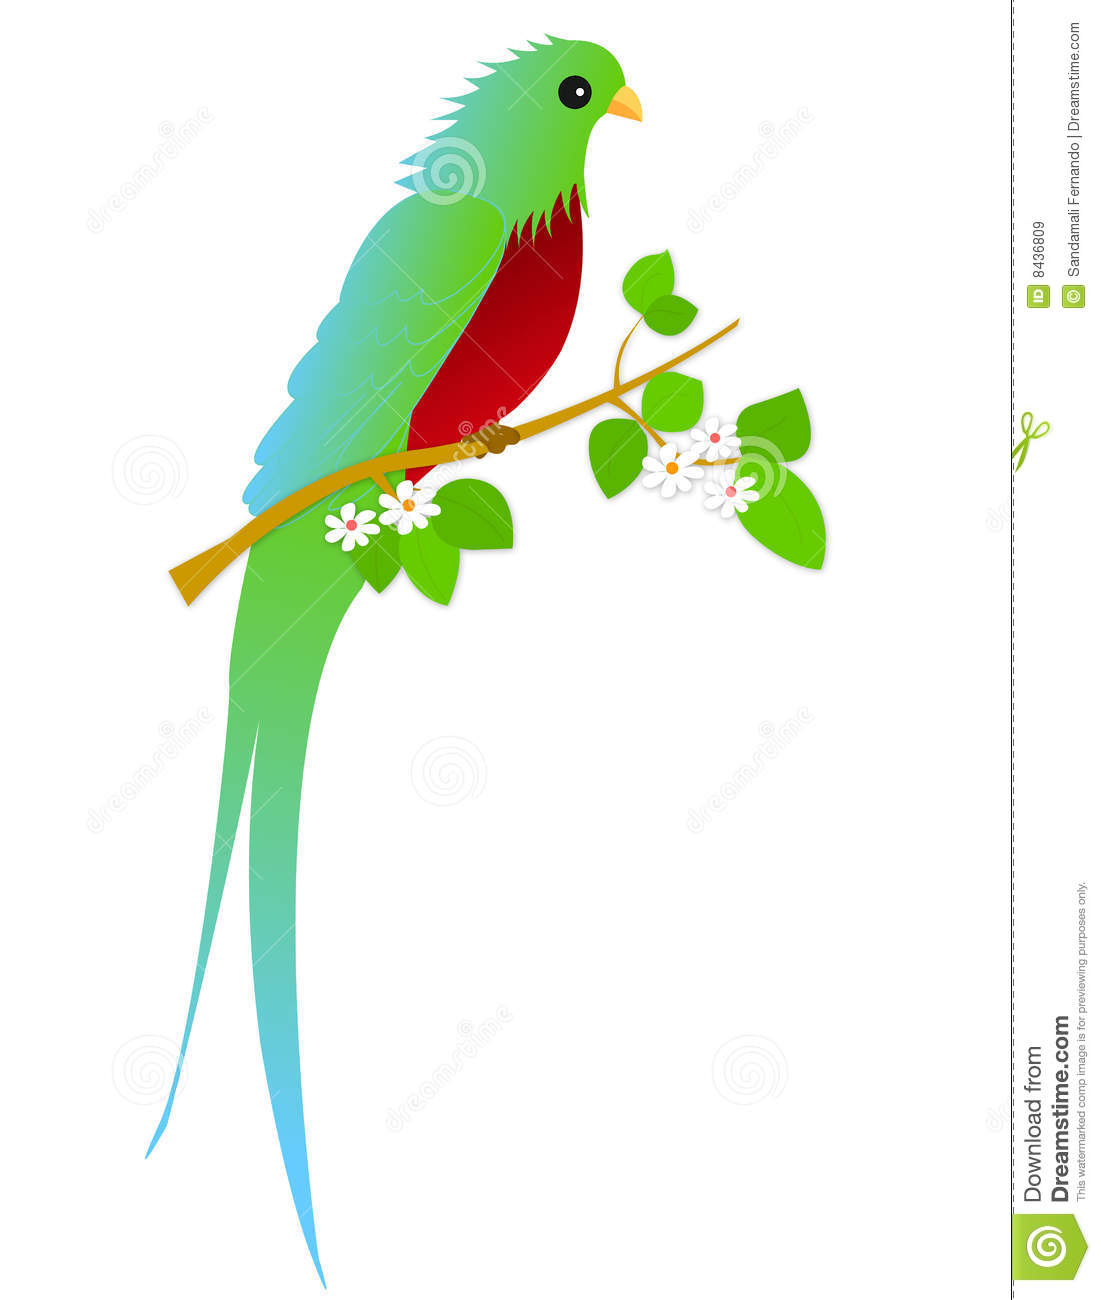 Quetzal Of Guatemala clipart #17, Download drawings